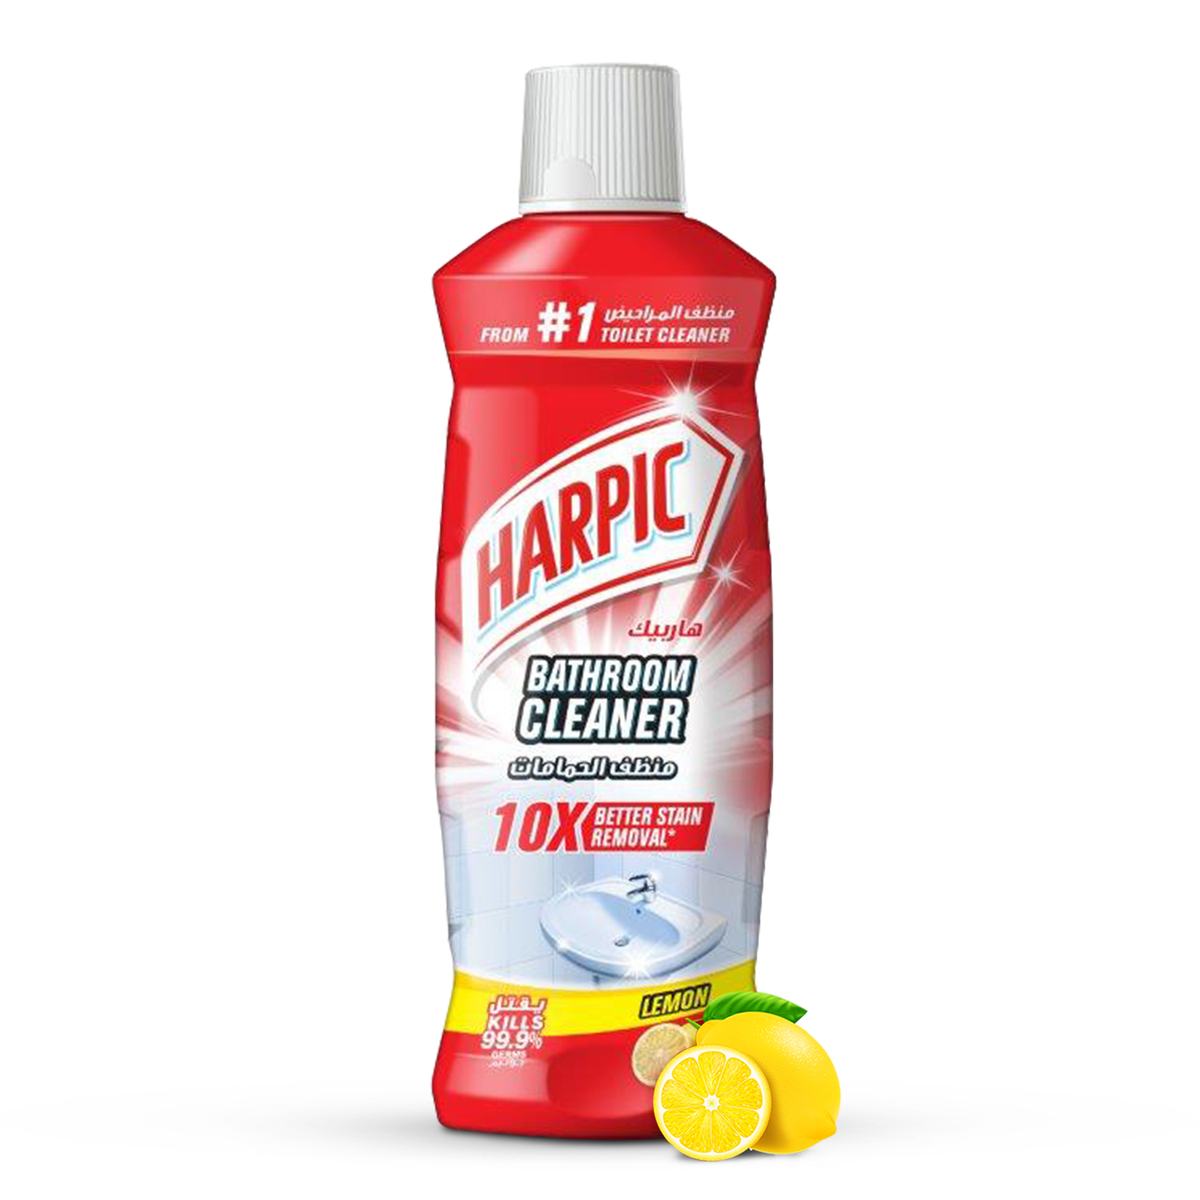 Harpic Bathroom Cleaner - Lemon.